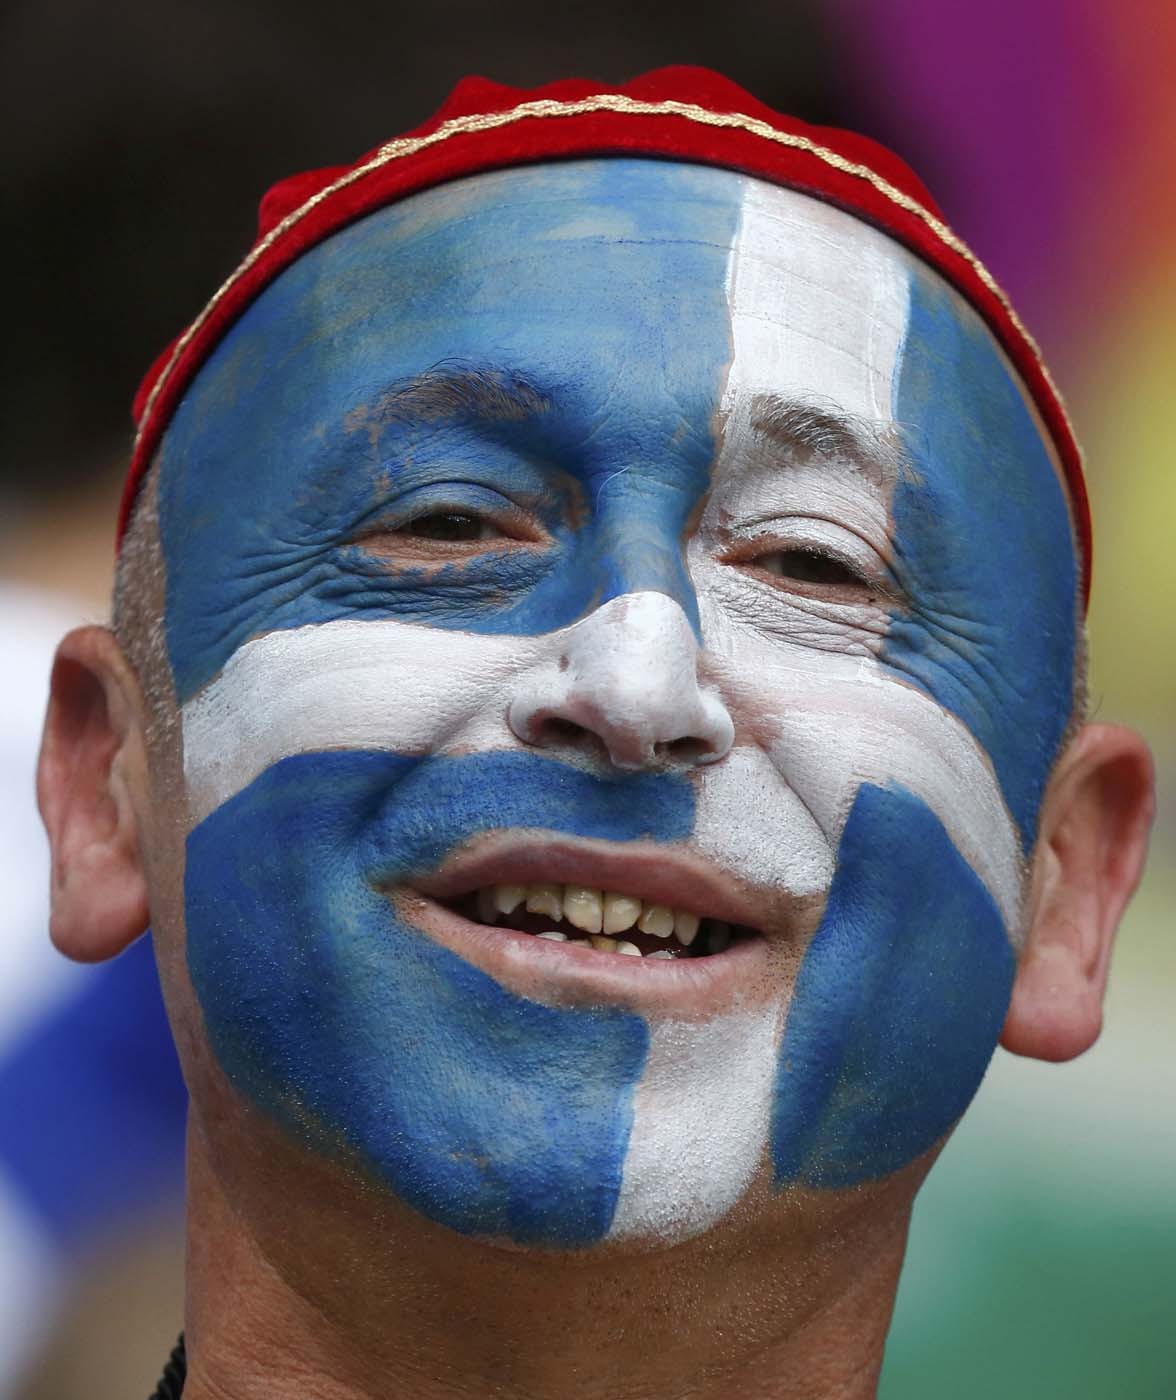 A Greece soccer fan with his face painted smiles as he waits for the start of the Group A Euro 2012 soccer match against Czech Republic at the city stadium in Wroclaw, June 12, 2012. (Dominic Ebenbichler/Reuters)